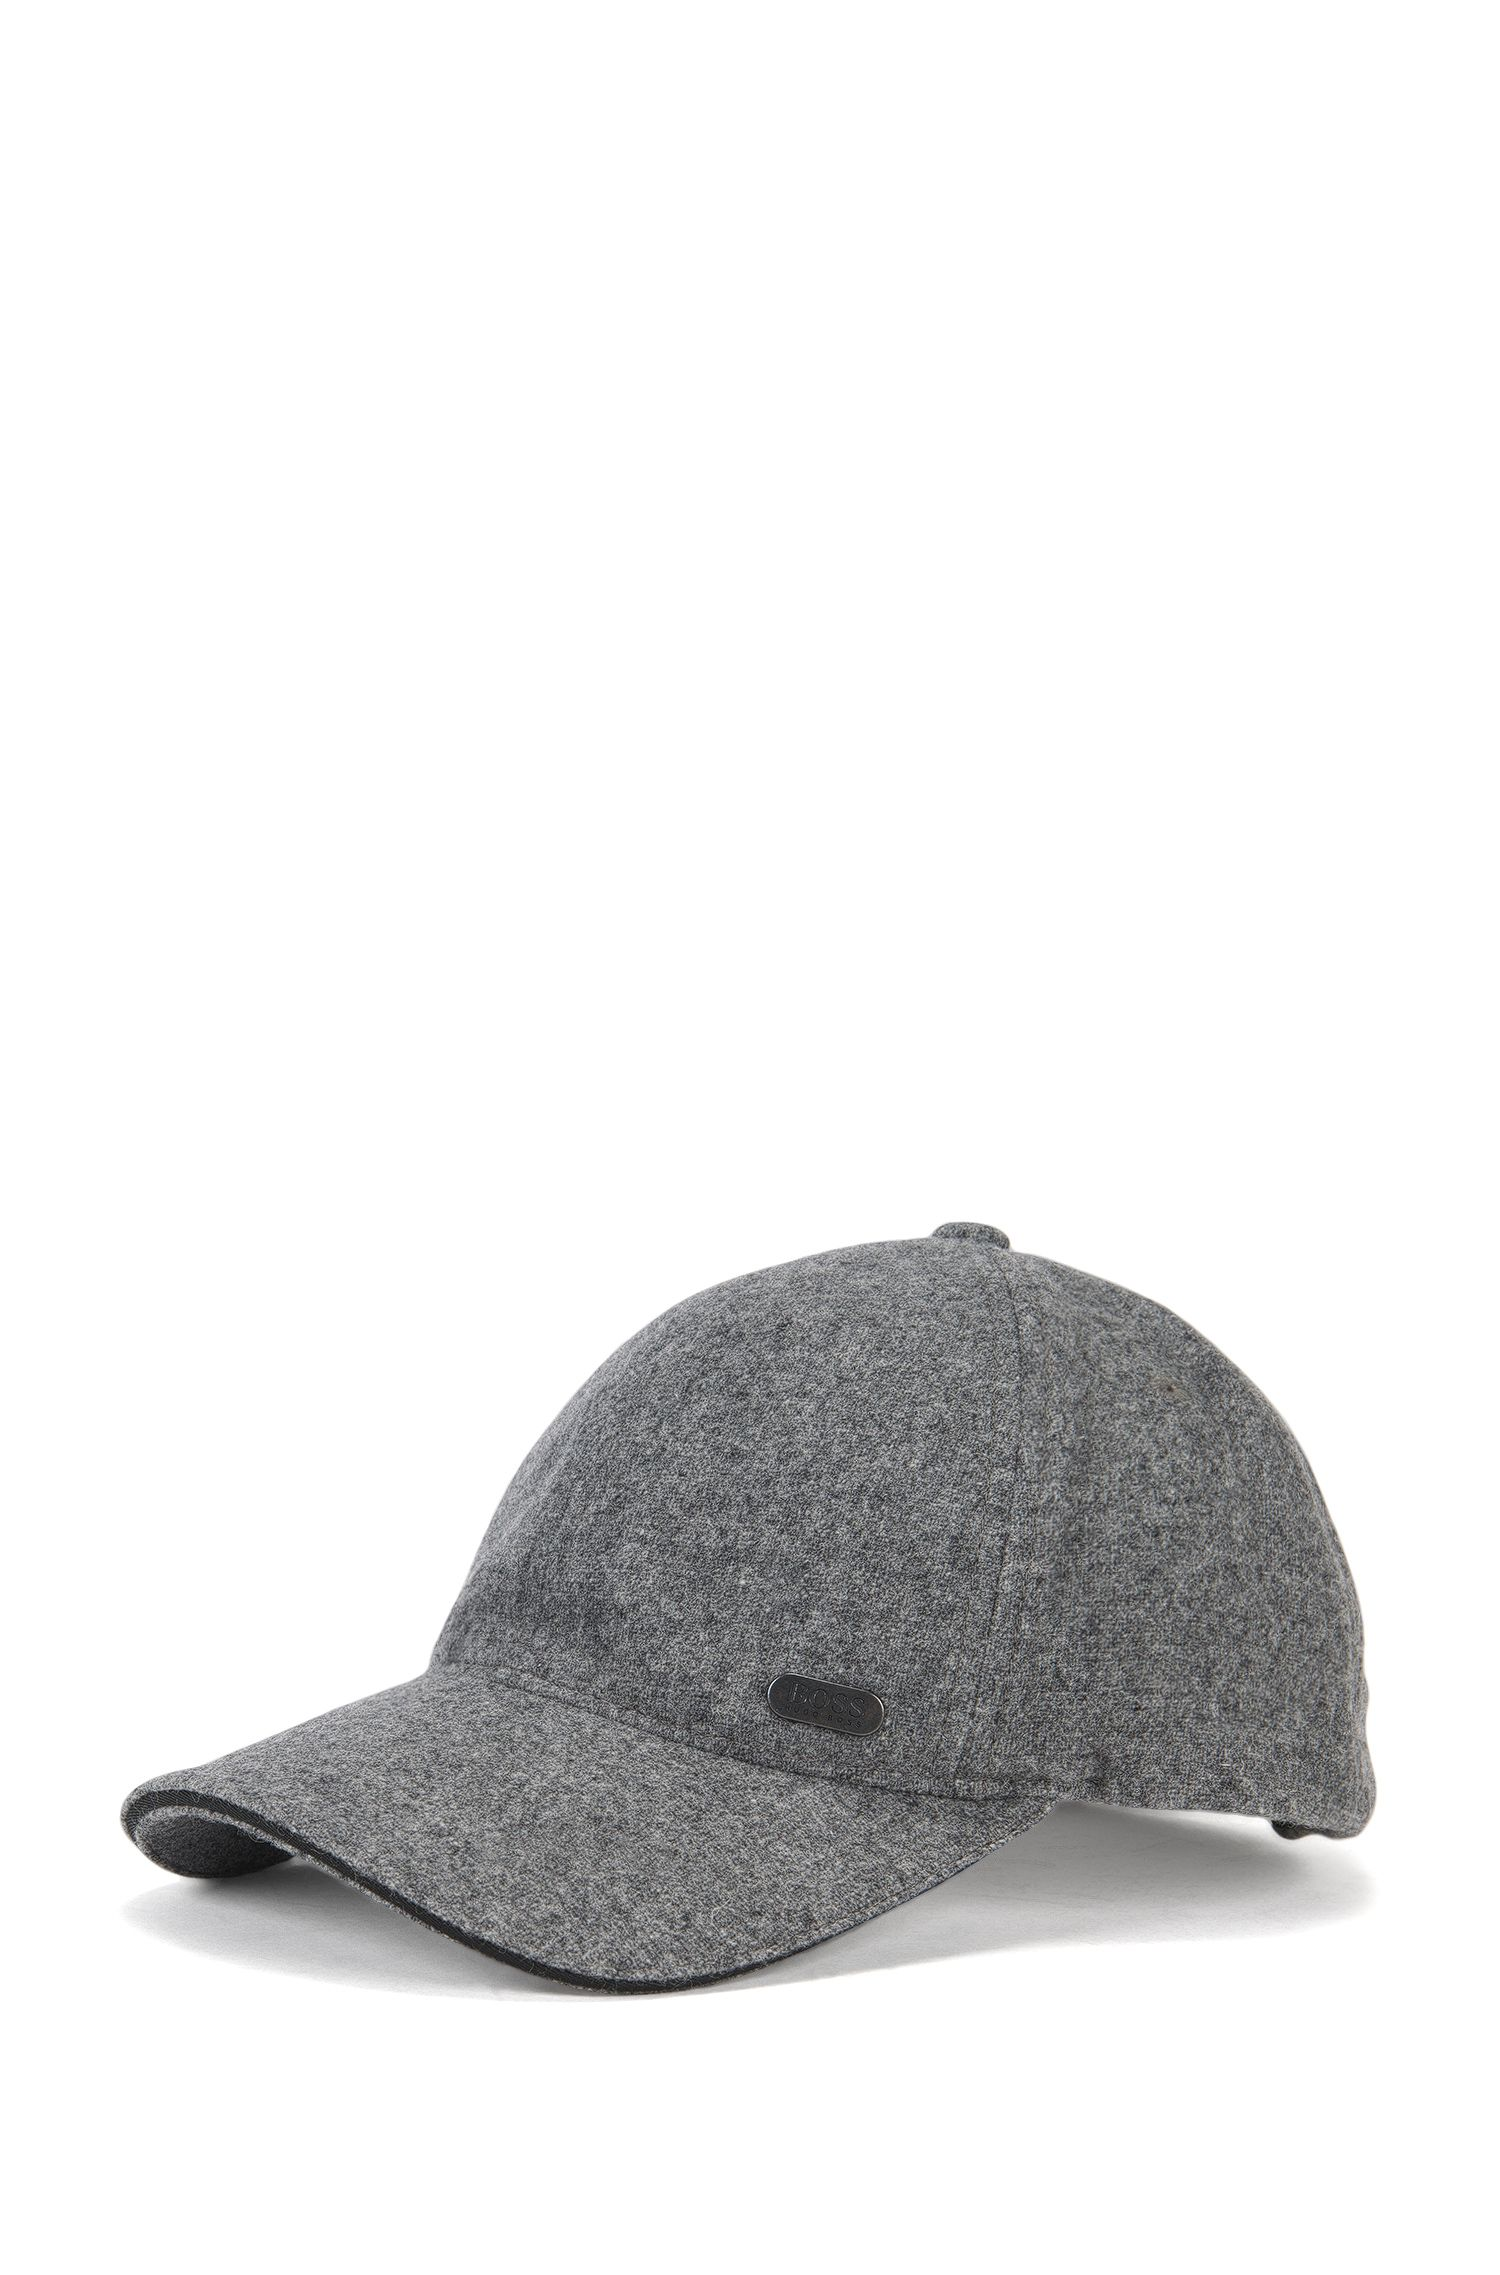 Wool Blend Baseball Cap | Winter Cap